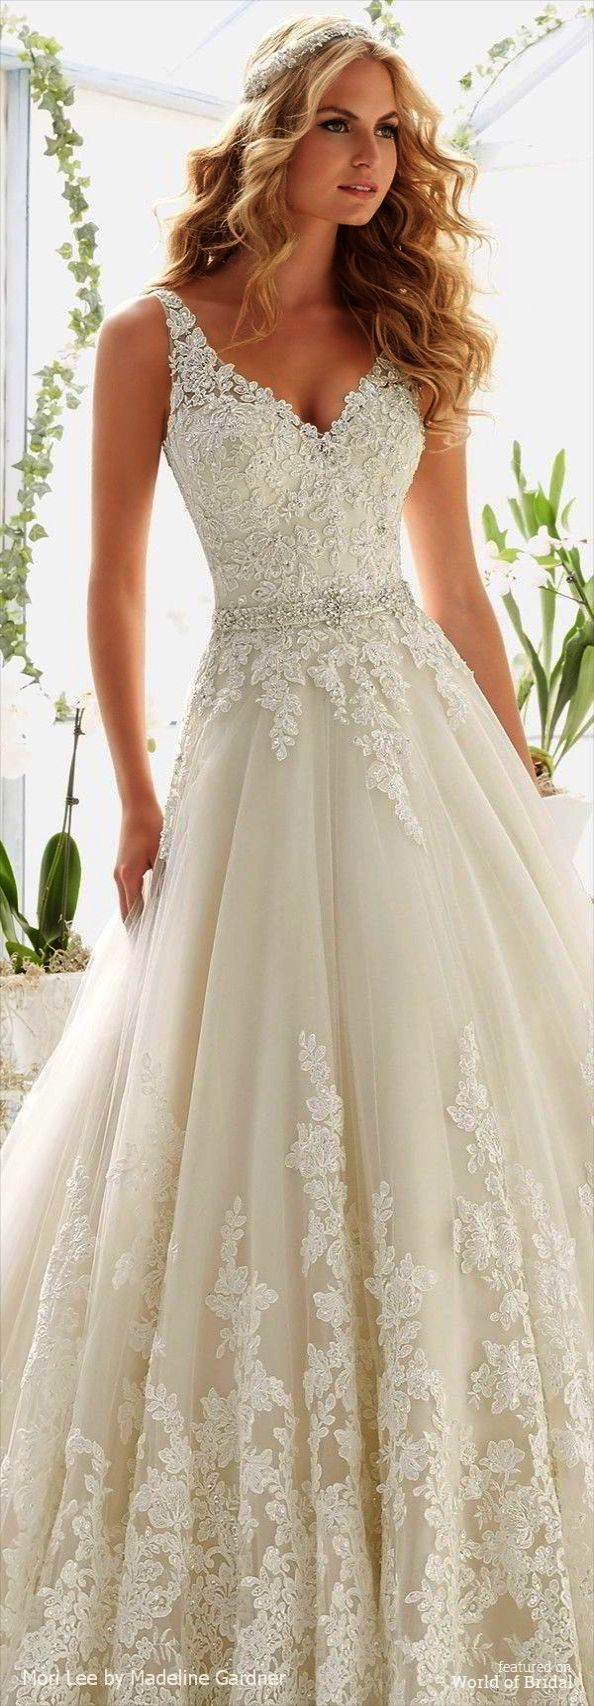 Vintage Lace Wedding Dresses Johannesburg Lace Wedding Dresses Gauteng